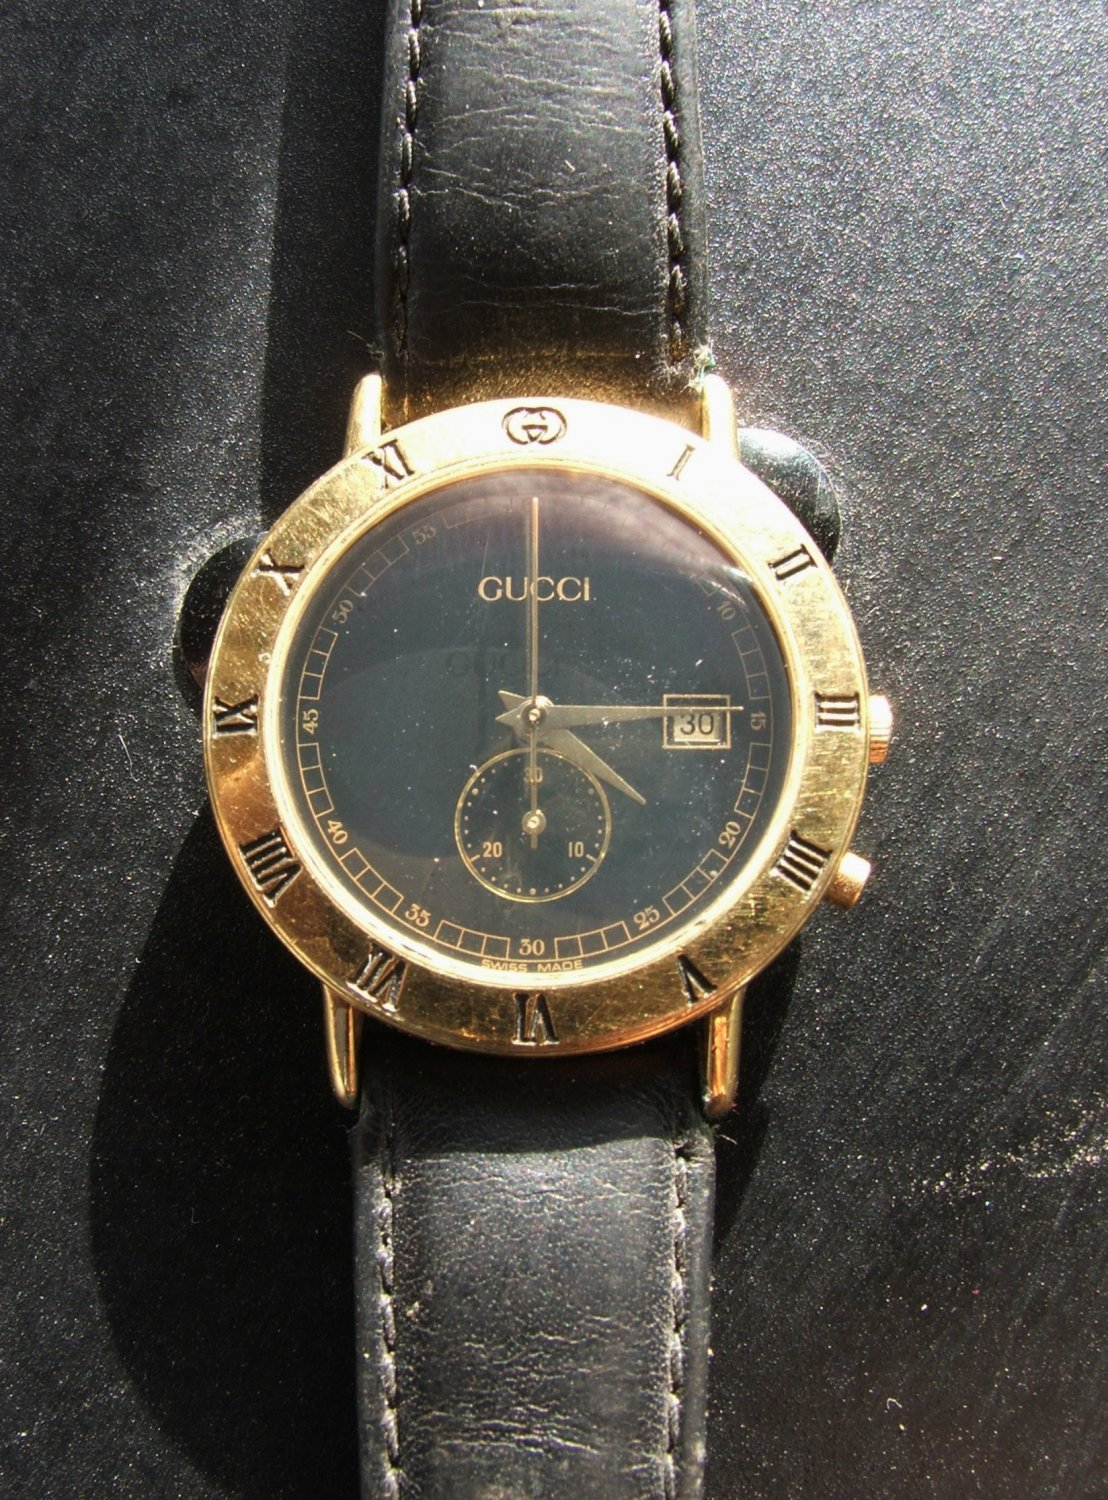 Gucci 3800 Jr. Women's Watch